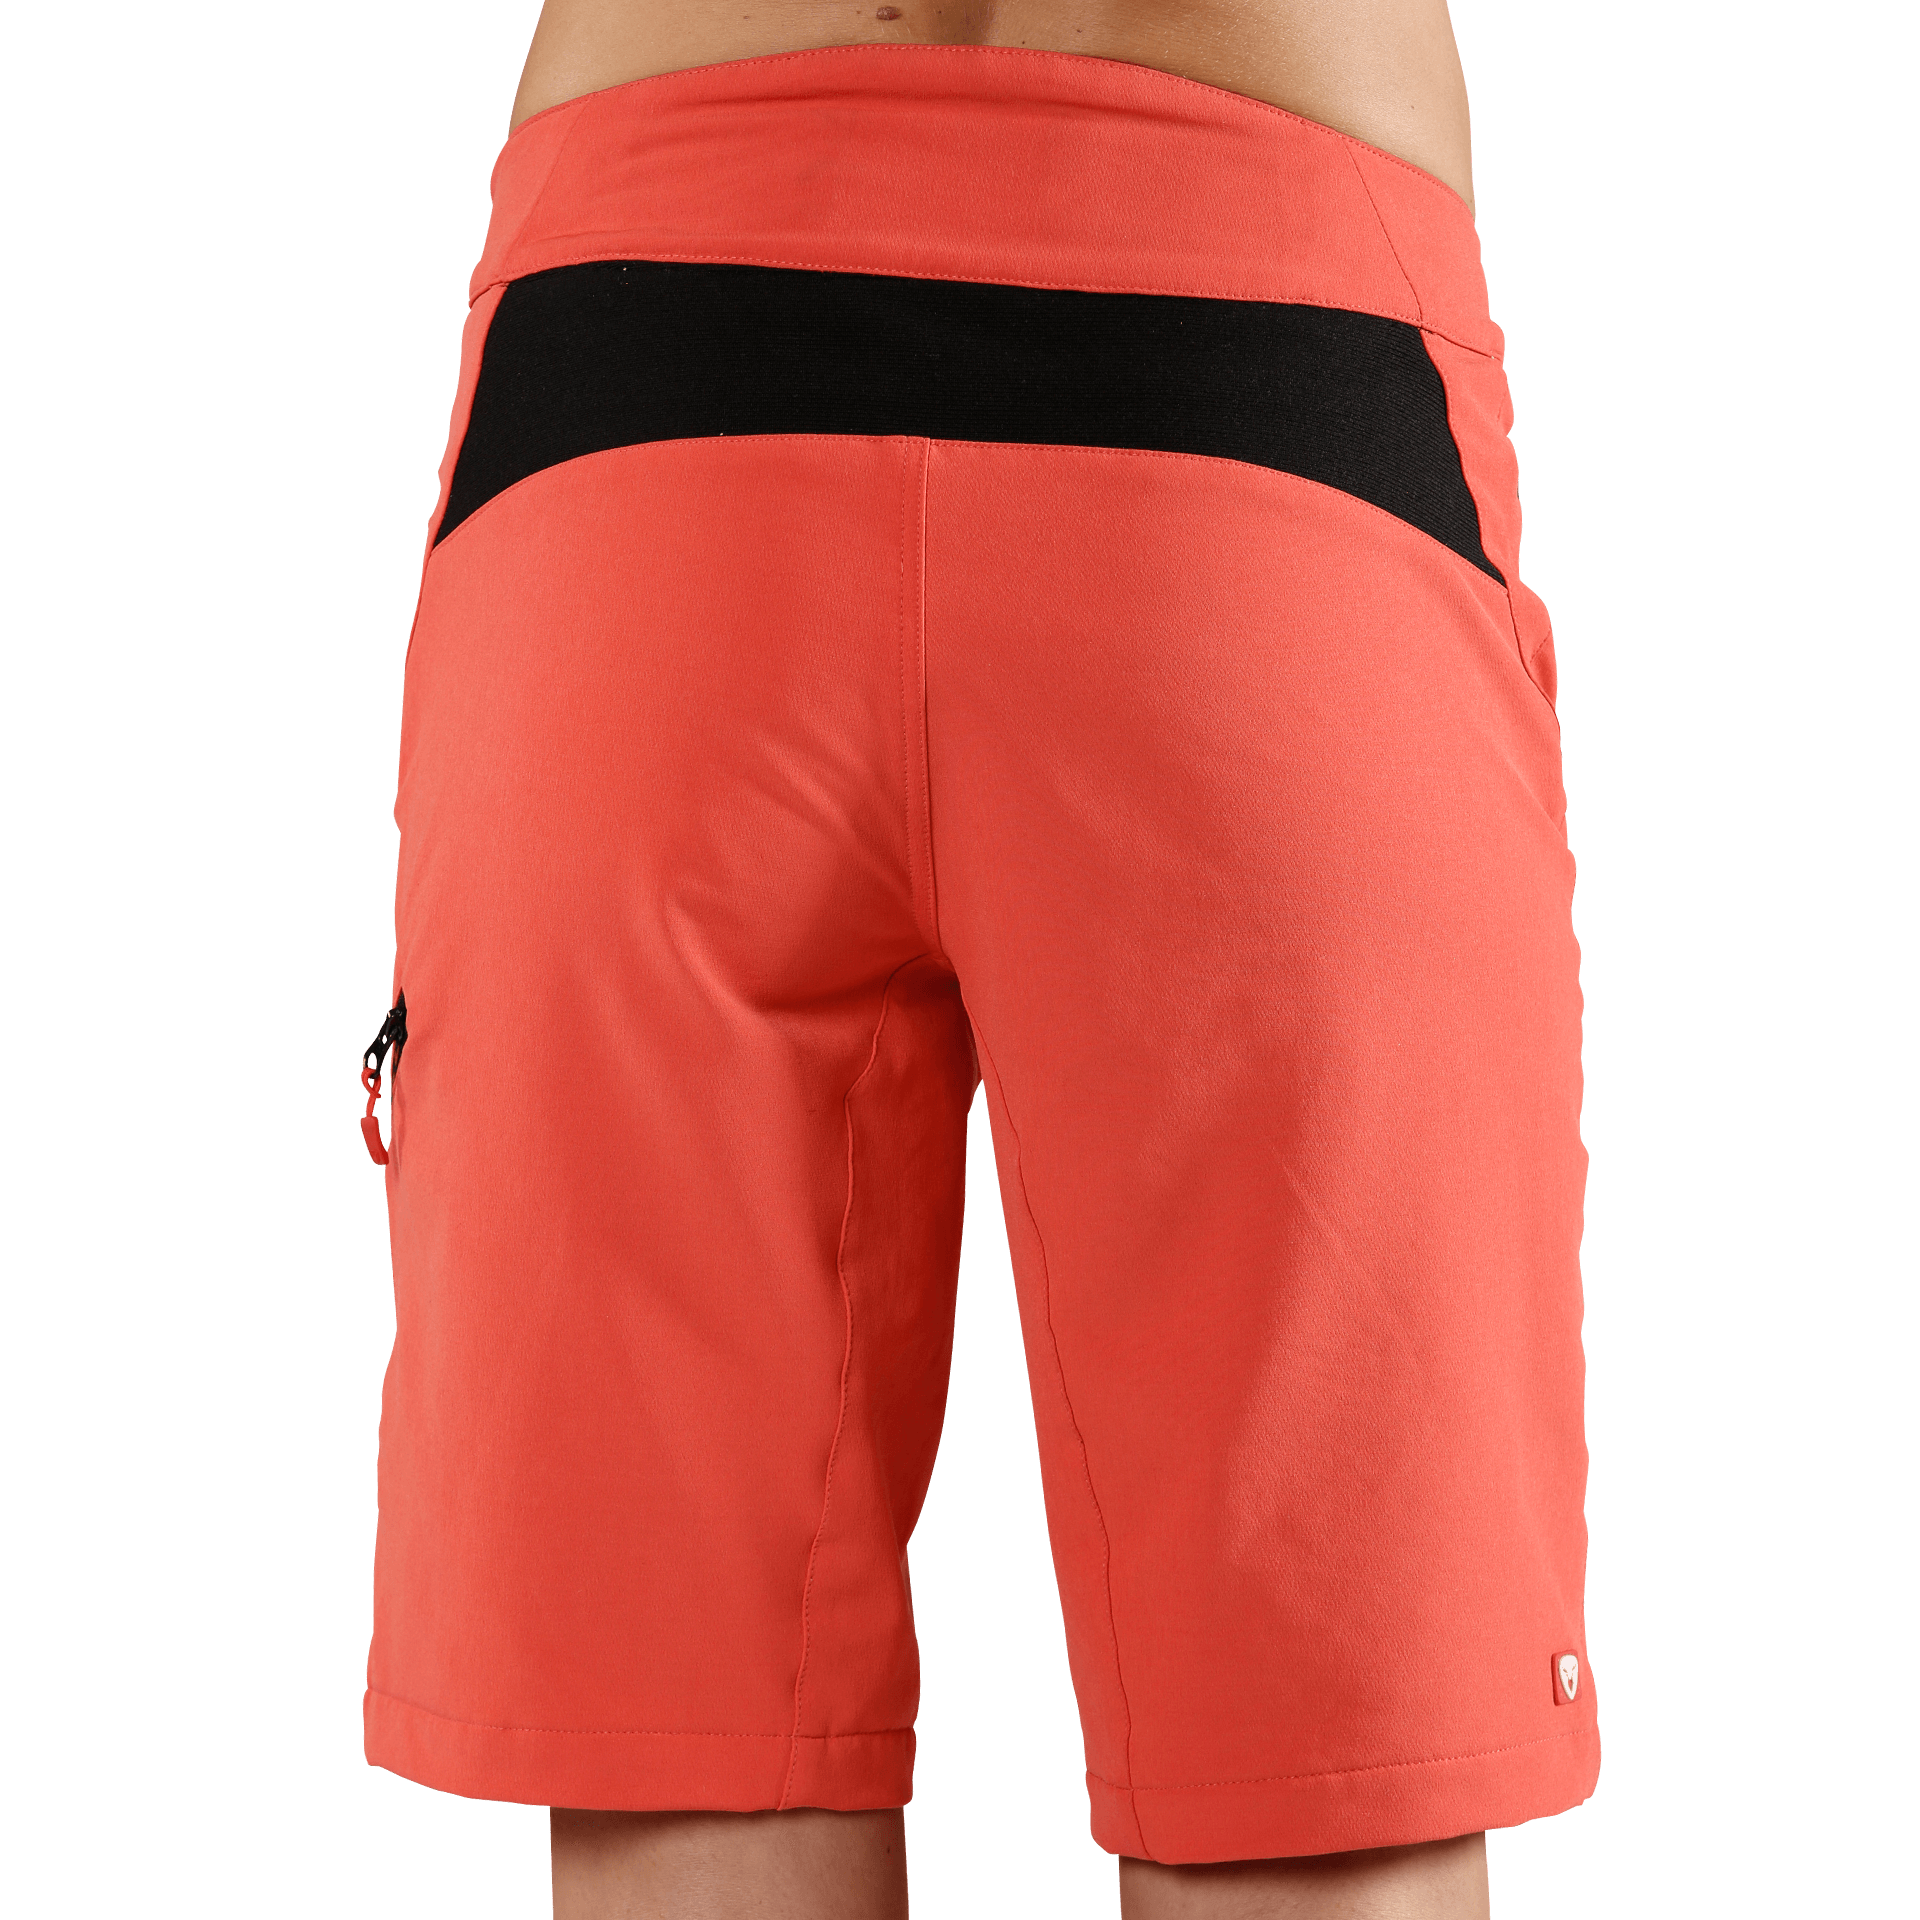 RCD TRAIL SHORT, HOT RED - hot red - L - RCD TRAIL SHORT, HOT RED - hot red - L